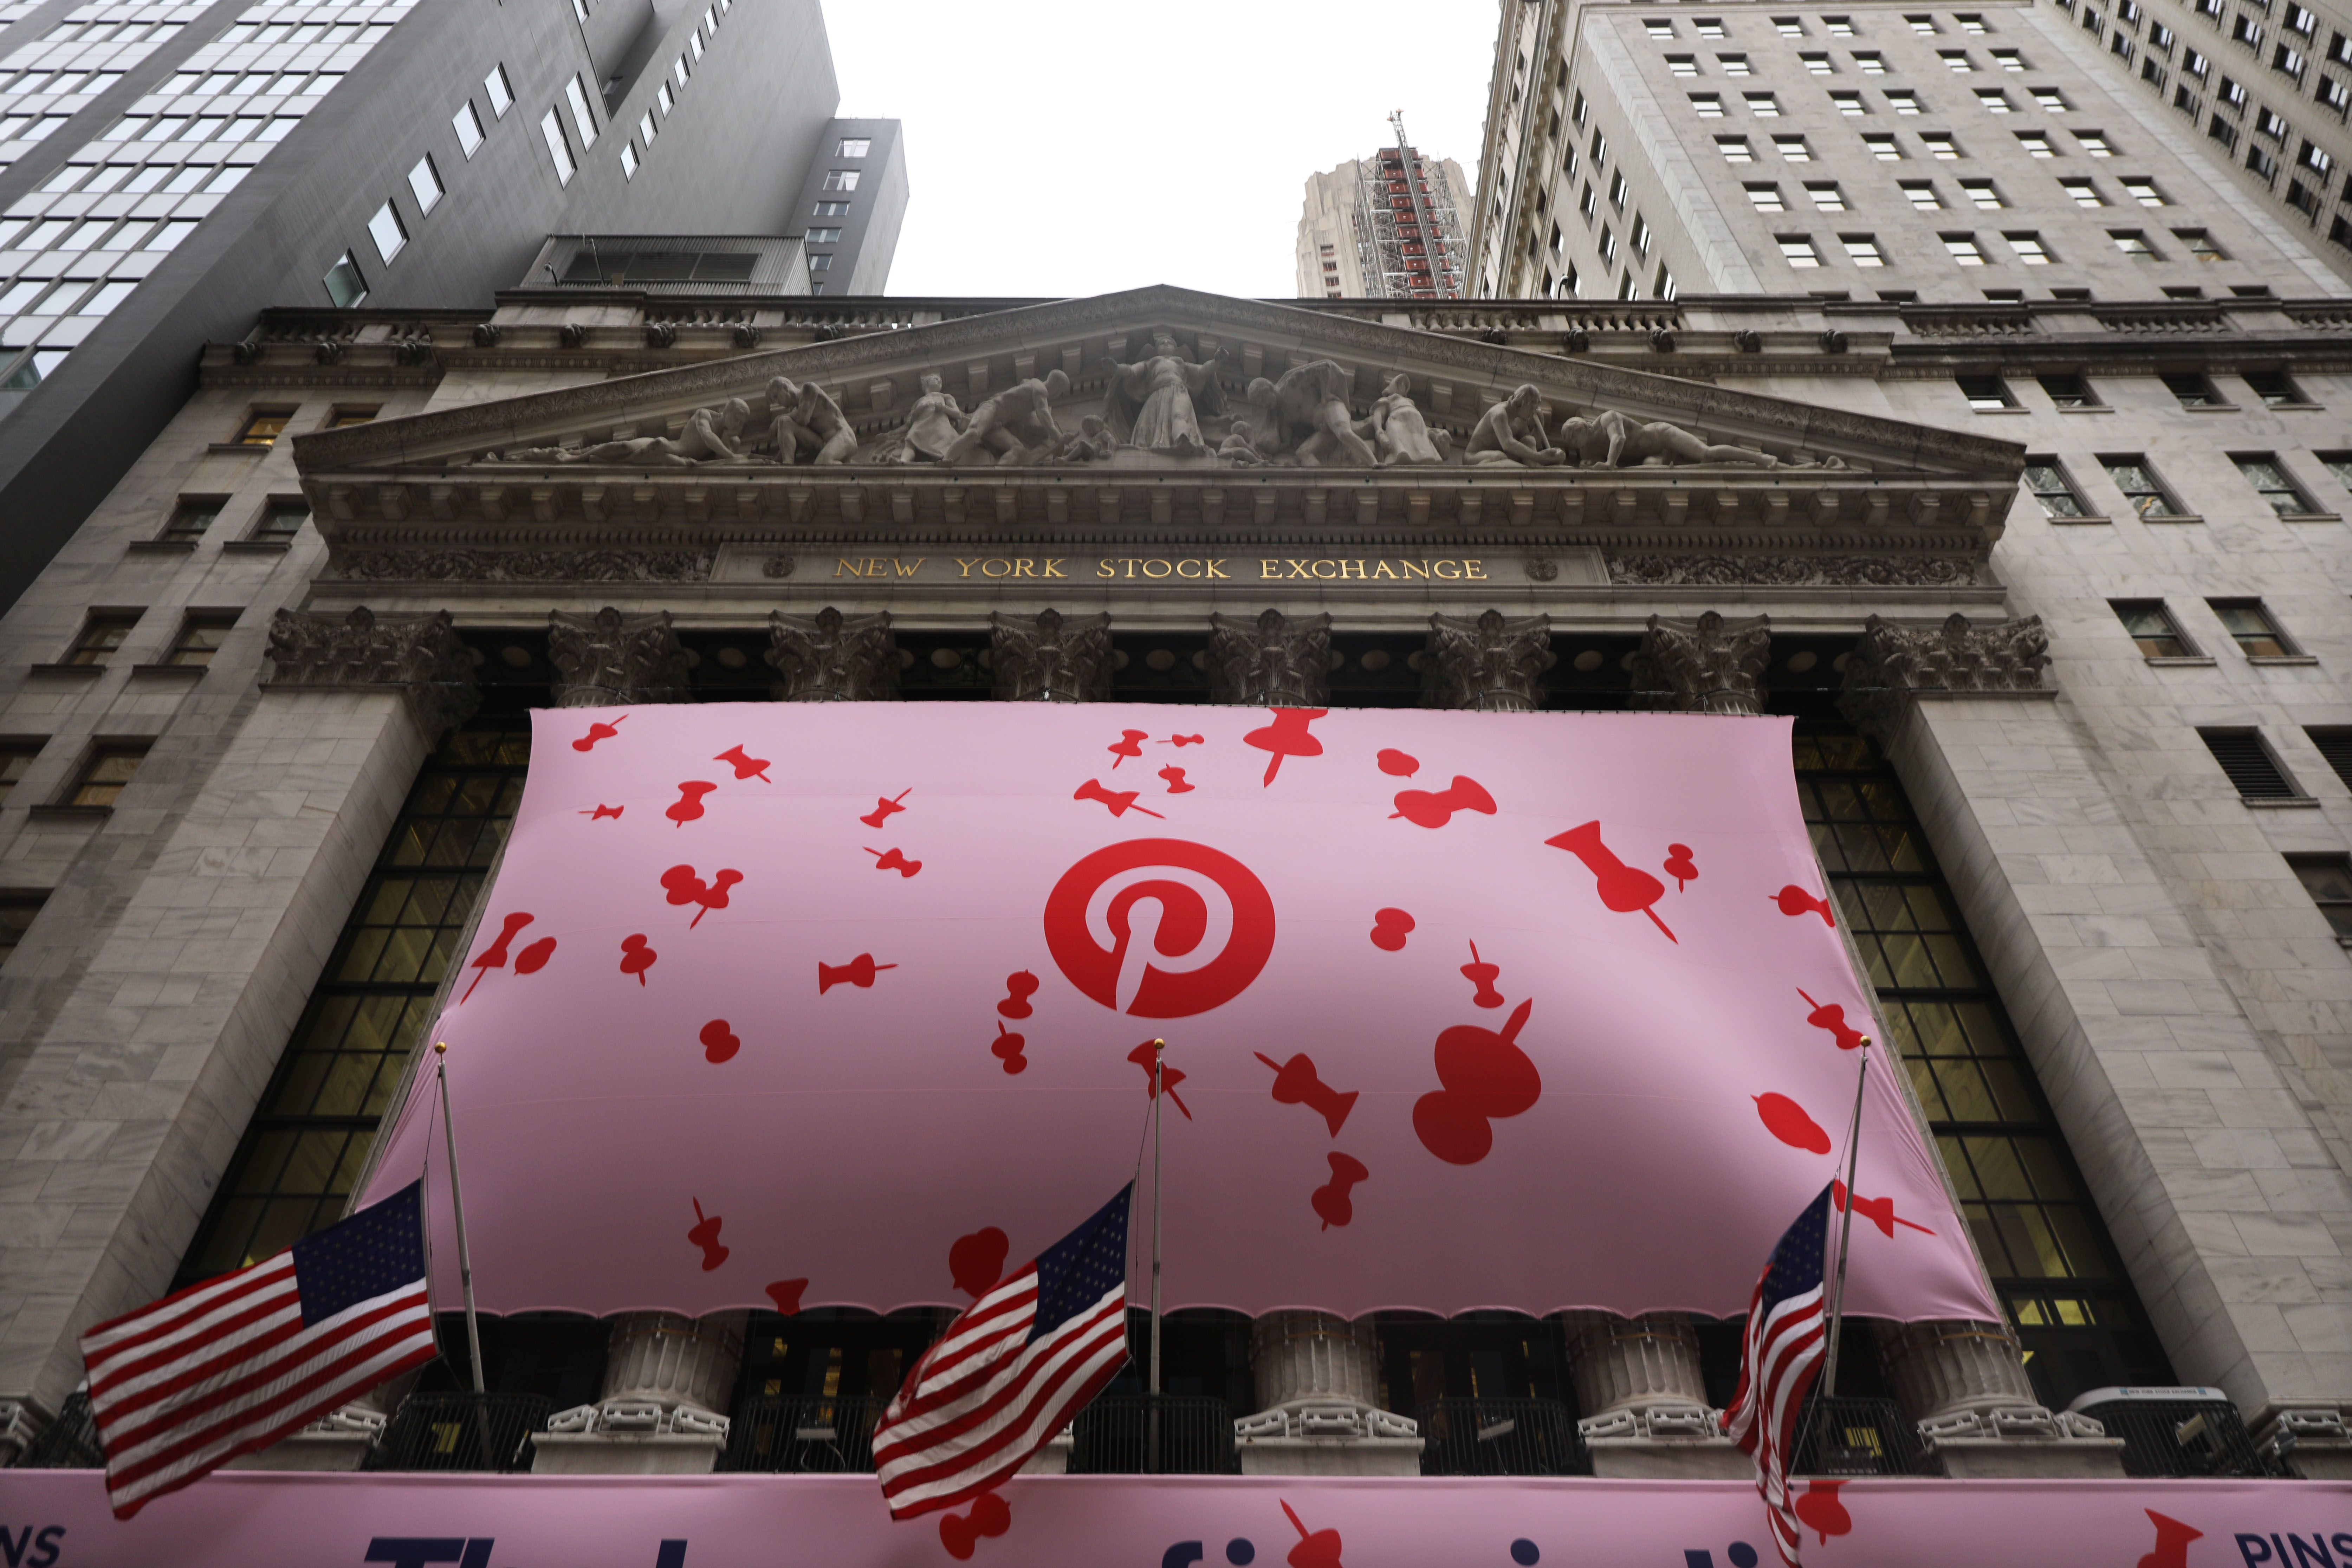 Pinterest, Nvidia, Applied Materials and more